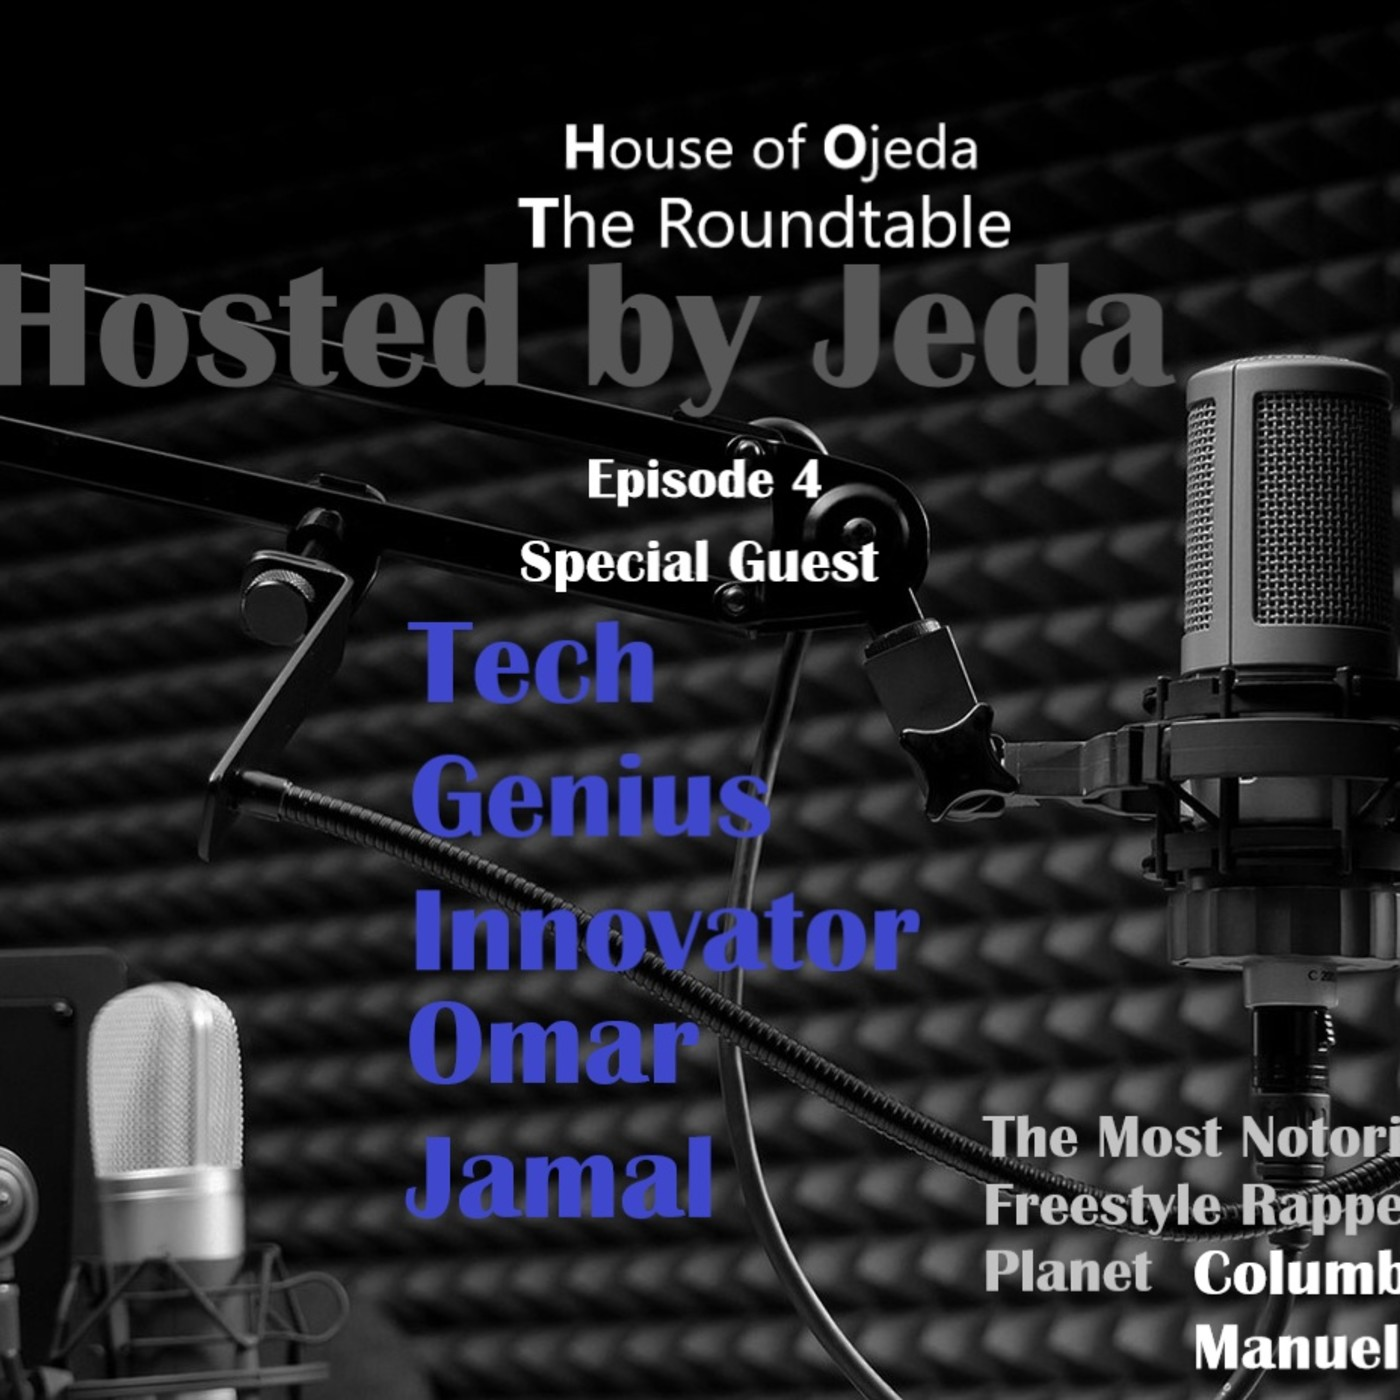 House of Ojeda The Roundtable Podcast